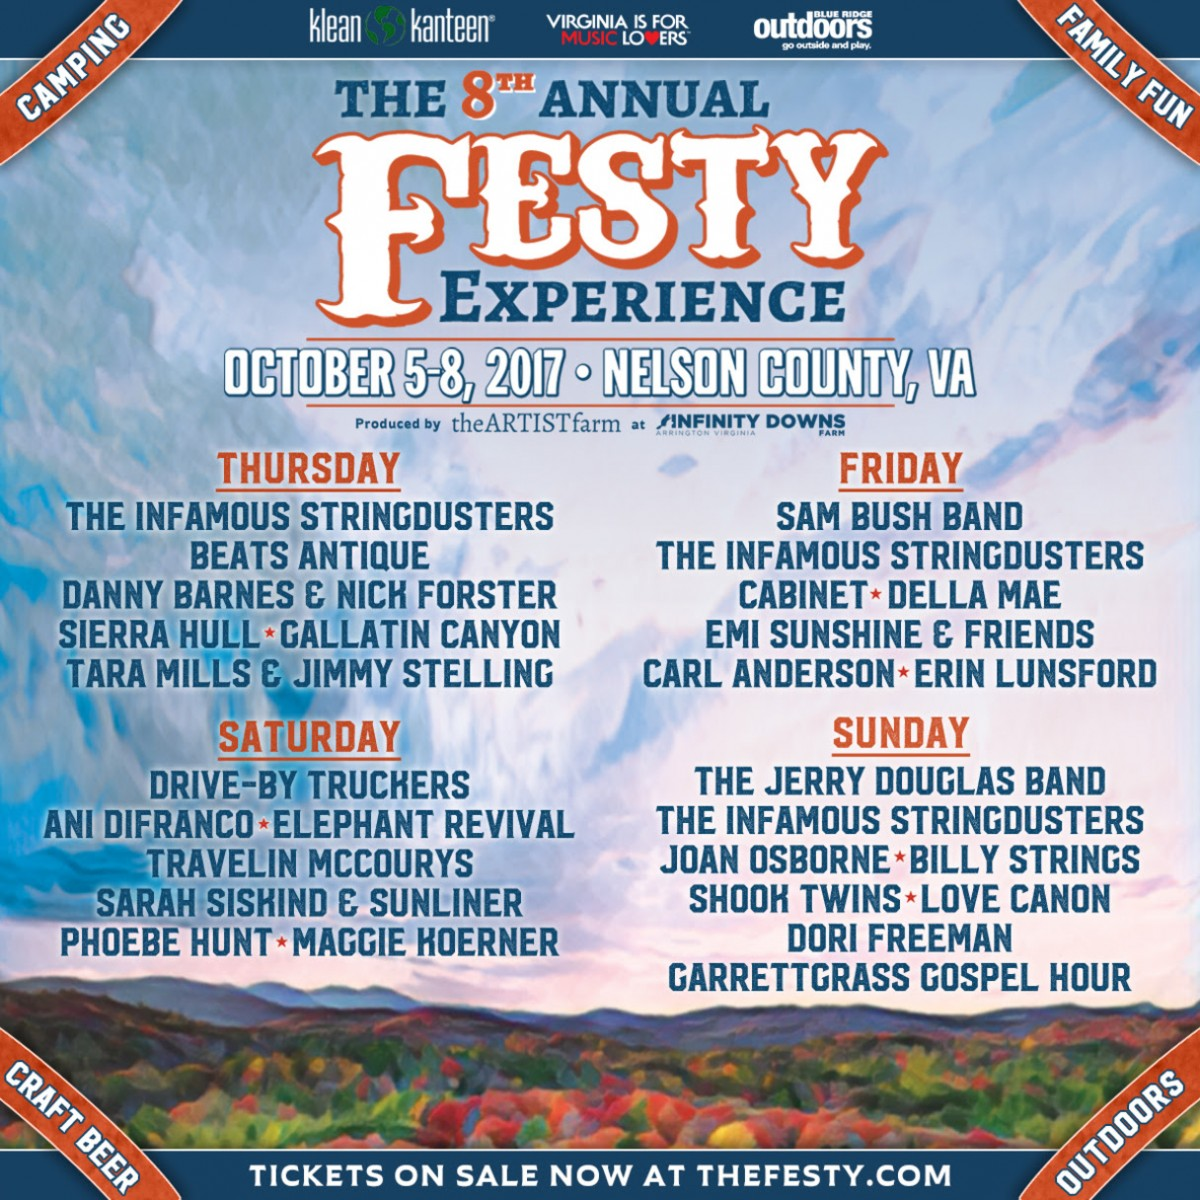 The 8th Annual Festy Experience